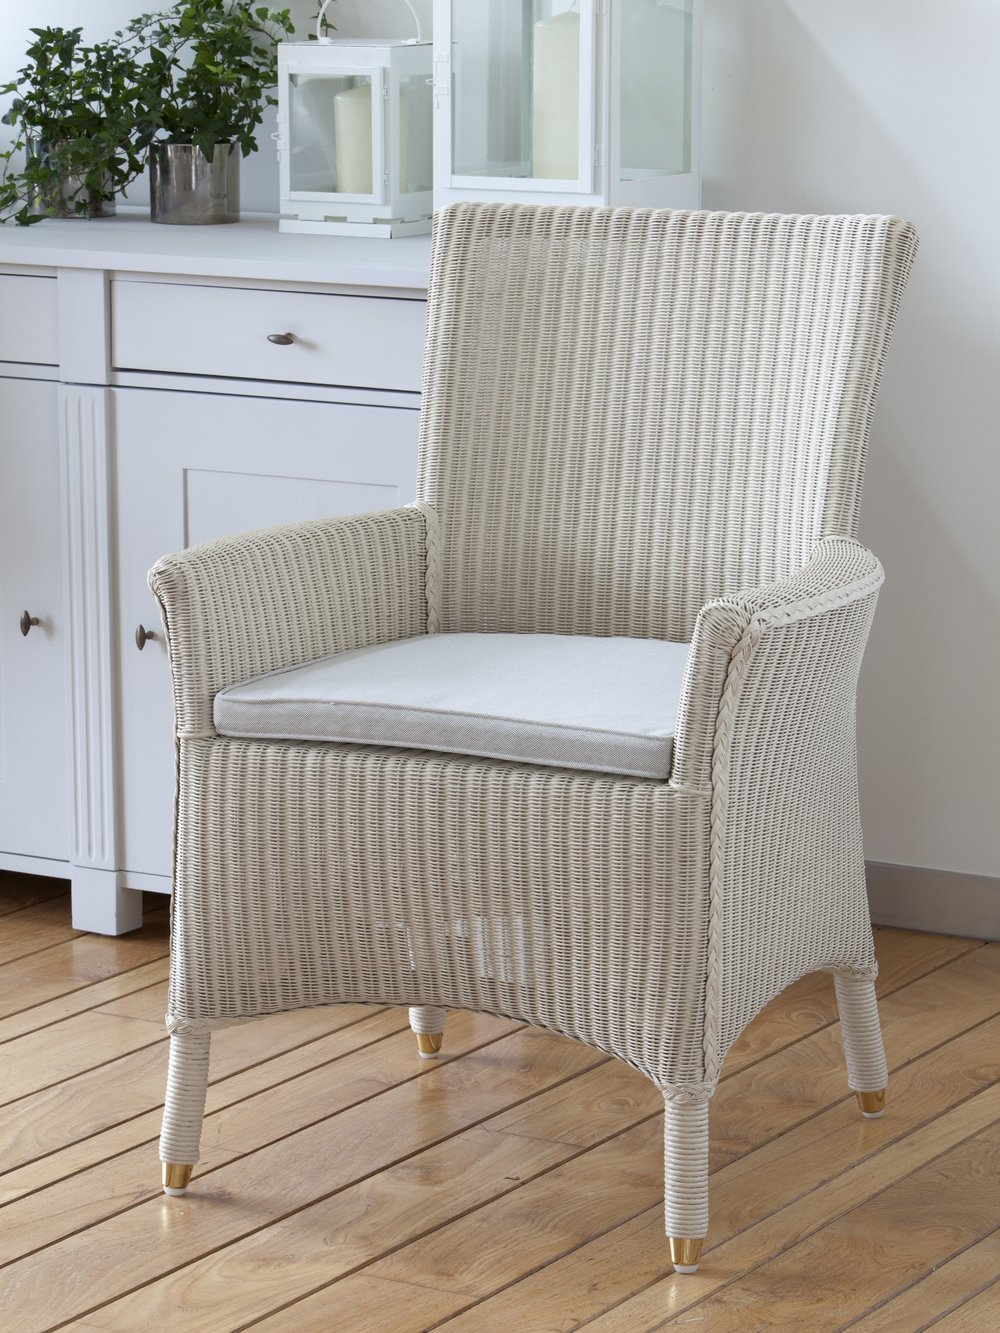 ZMA004-Loom chair with arms